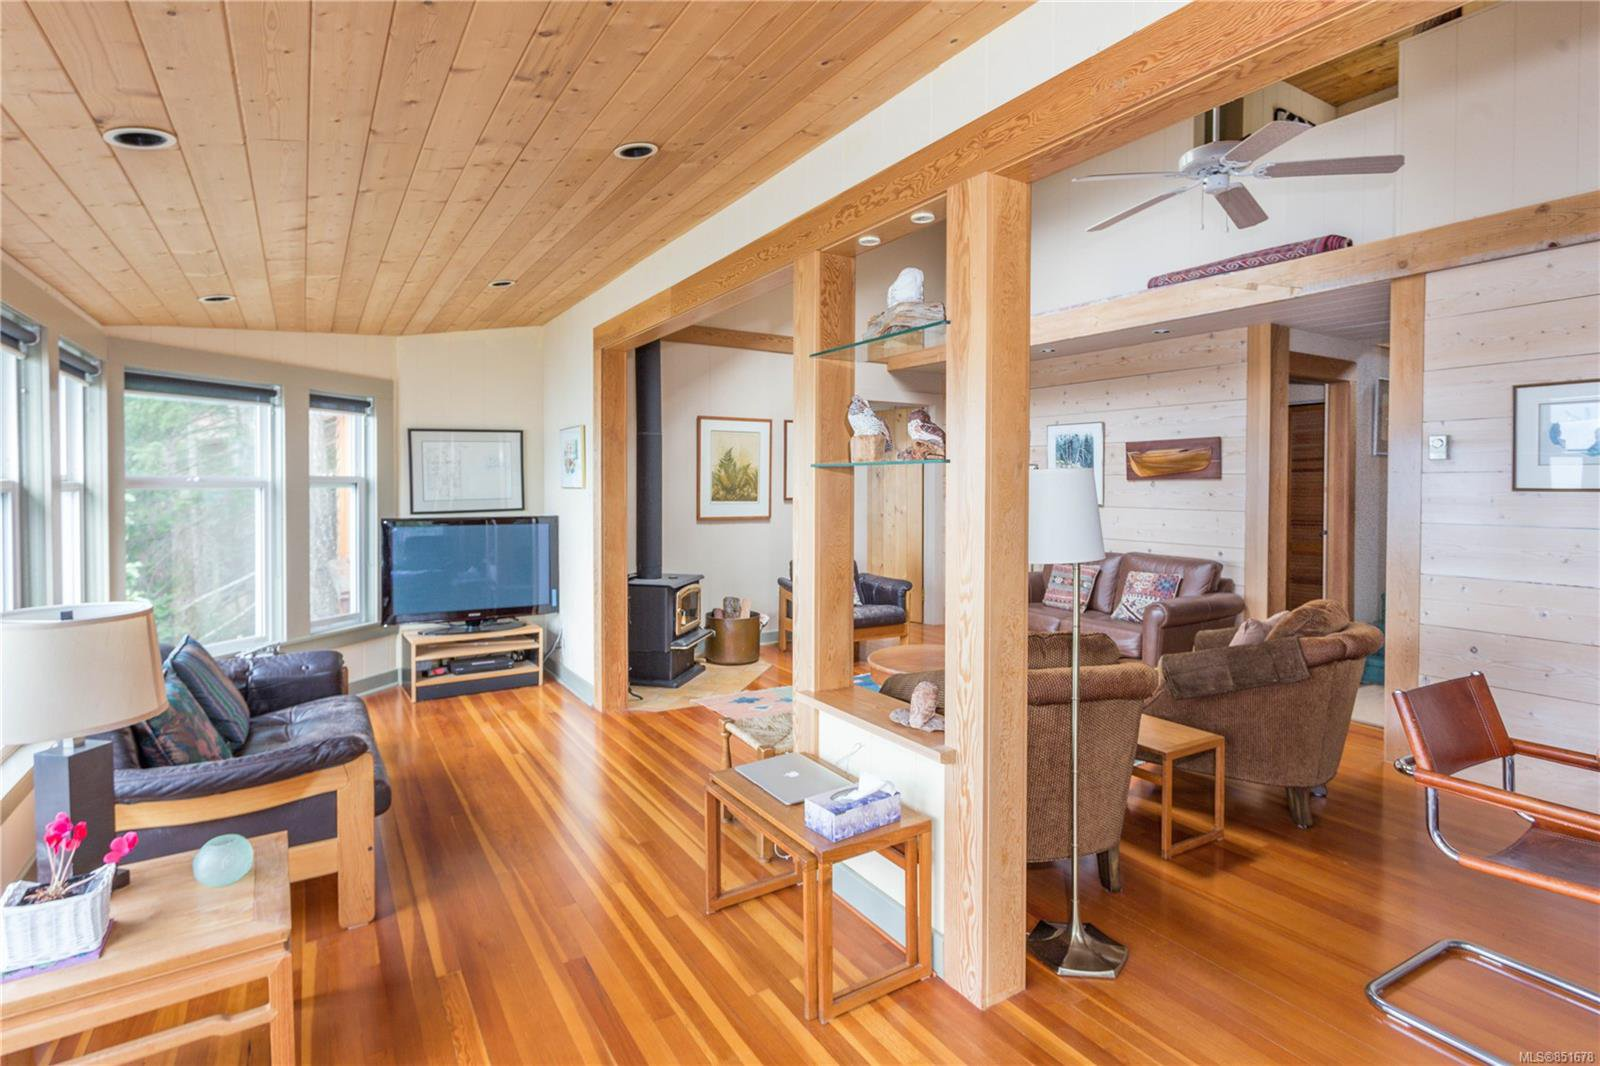 Photo 13: Photos: 262 Forbes Dr in : Isl Thetis Island House for sale (Islands)  : MLS®# 851678